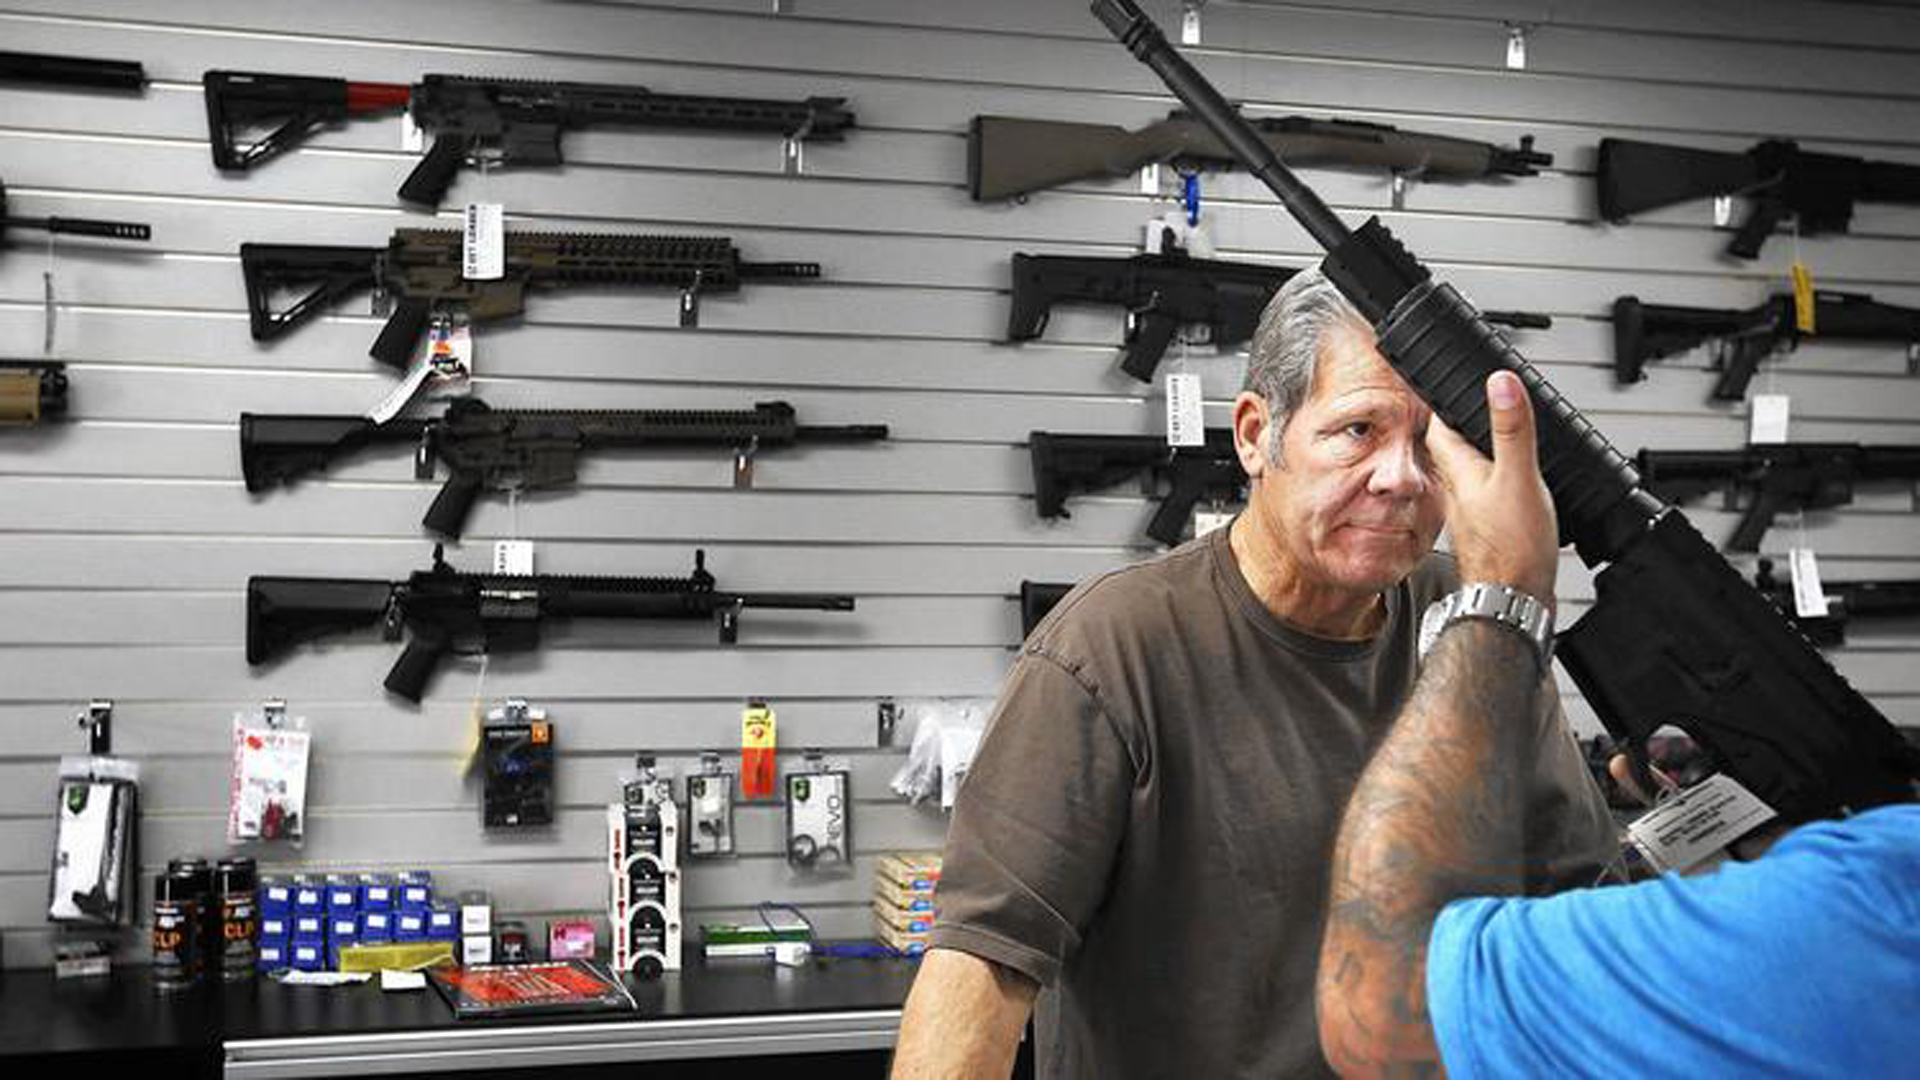 Frank Cobet of Get Loaded in Grand Terrace shows a customer a AR-15 rifle. store in Grand Terrace in 2015. (Credit: Barbara Davidson / Los Angeles Times)